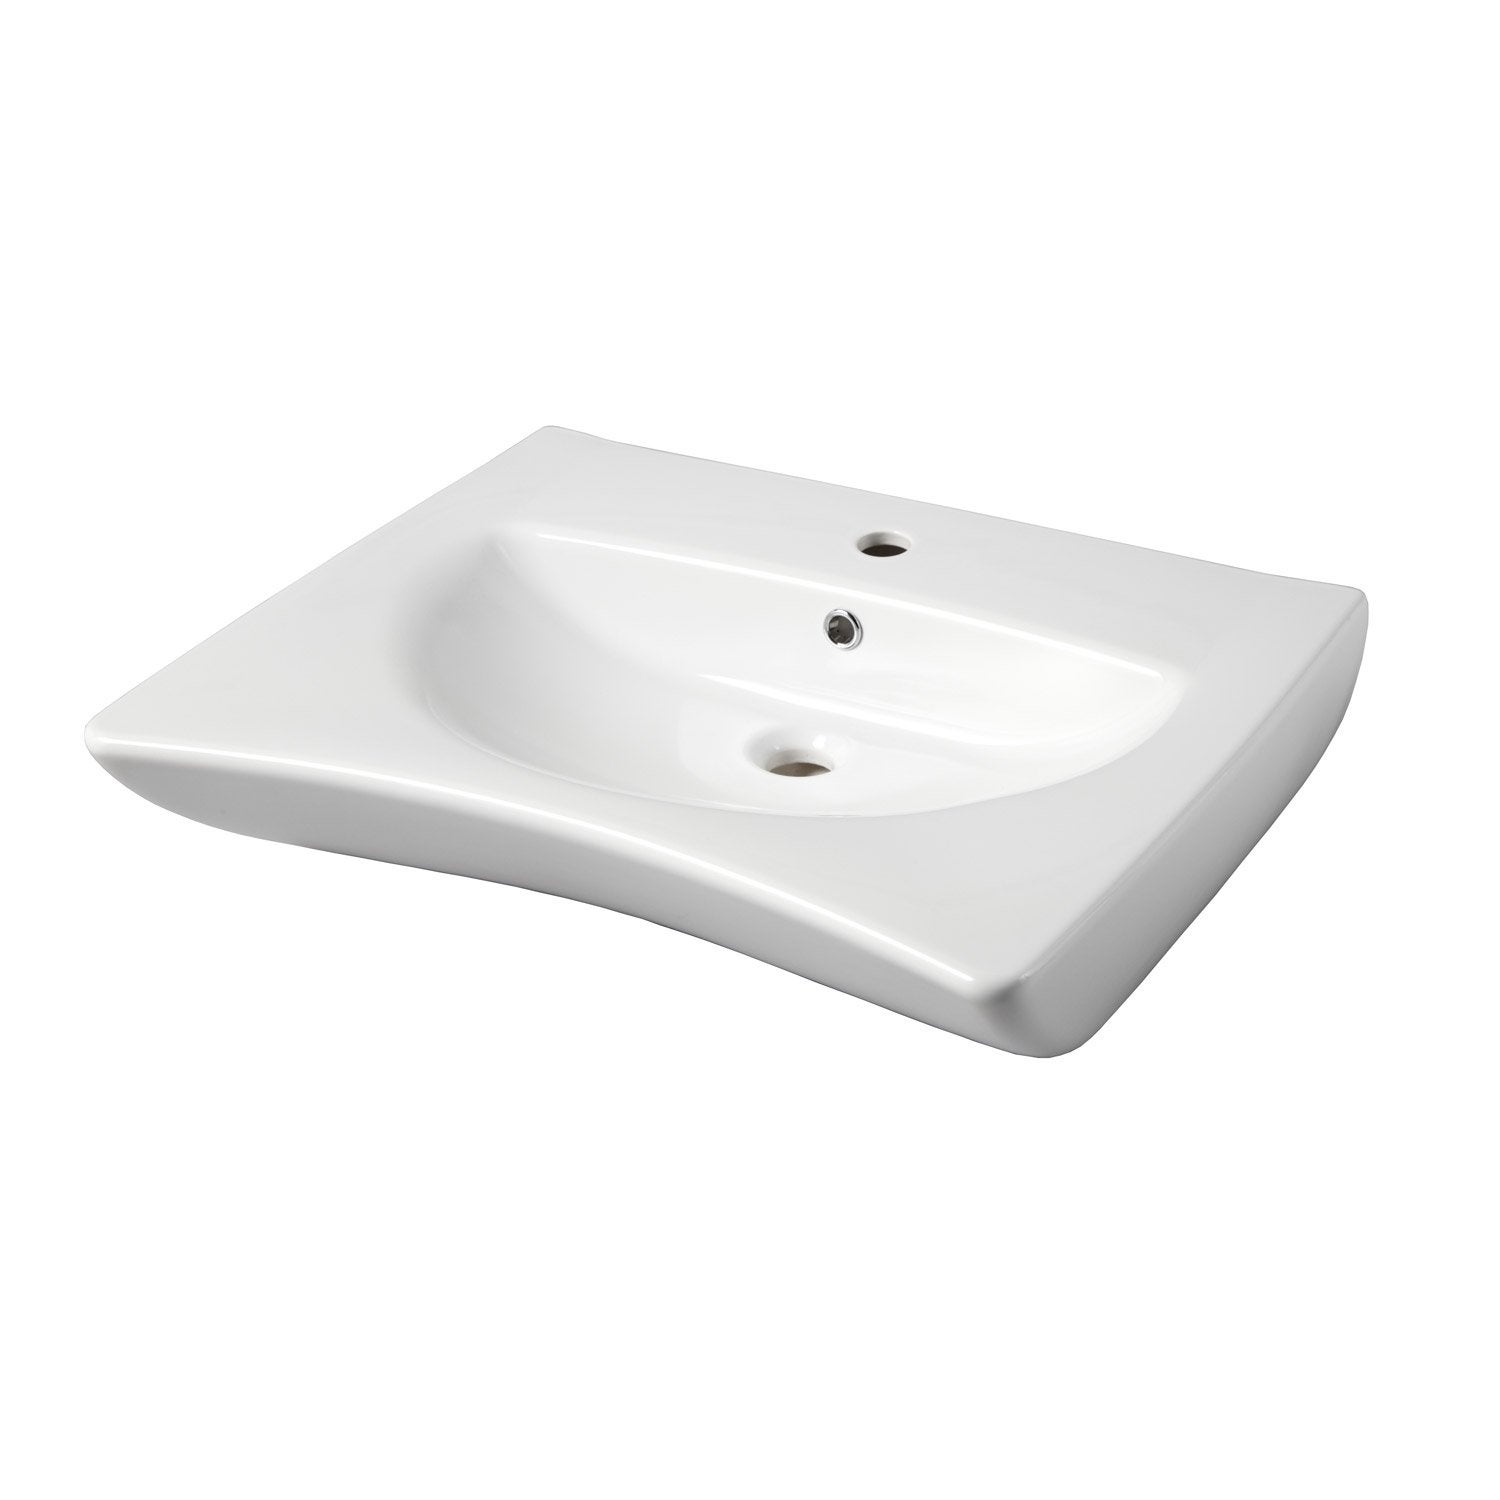 Lavabo en c ramique blanc ergonomic leroy merlin for Lavabo le roy merlin